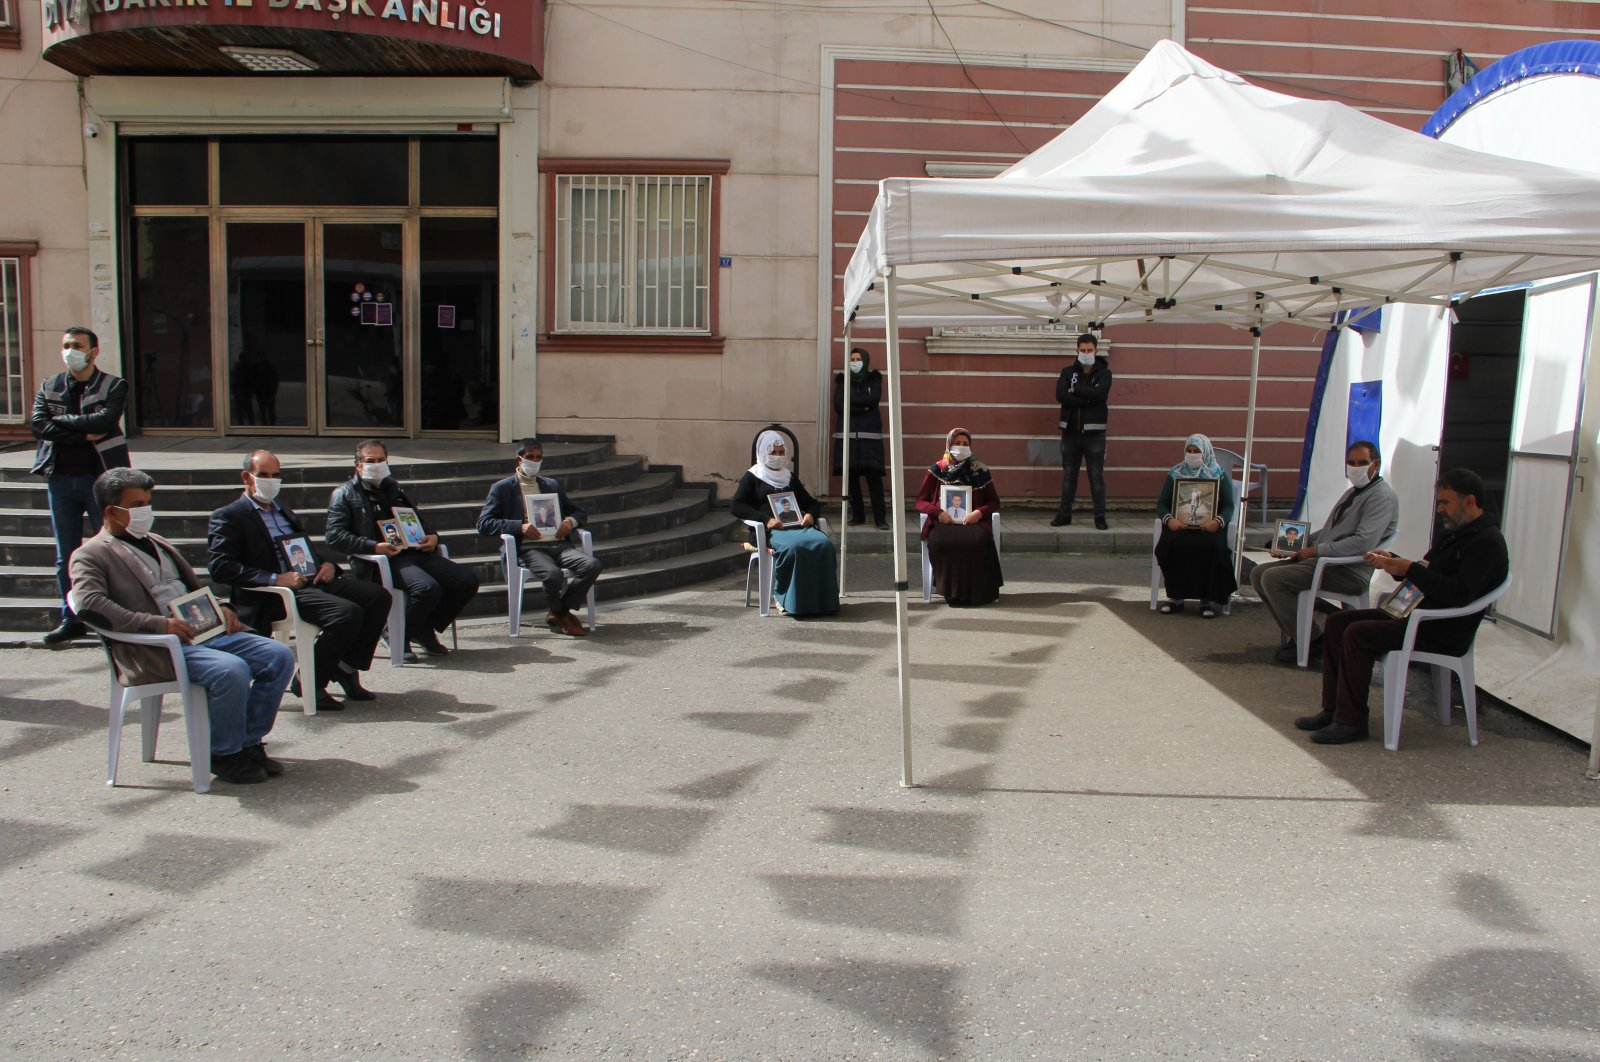 Families, protesting the abduction of their children by the PKK, continue their sit-in for the 217th day despite the coronavirus pandemic, Diyarbakır, Turkey, Monday, April 6, 2020. (IHA Photo)